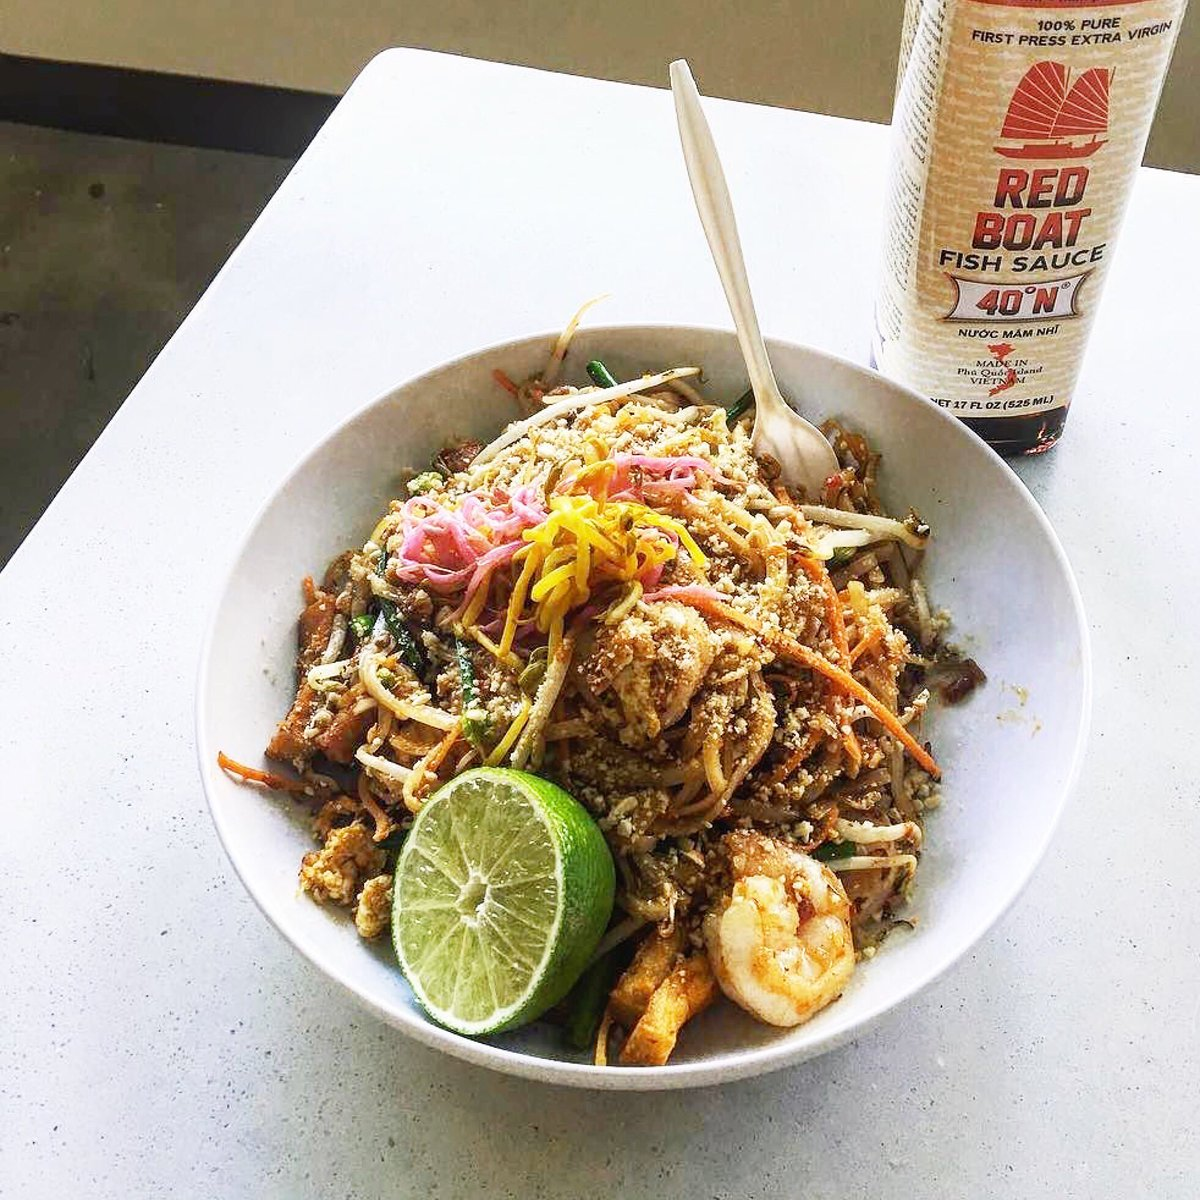 Malai Kitchen On Twitter Shrimp Pad Thai With Red Boat Is